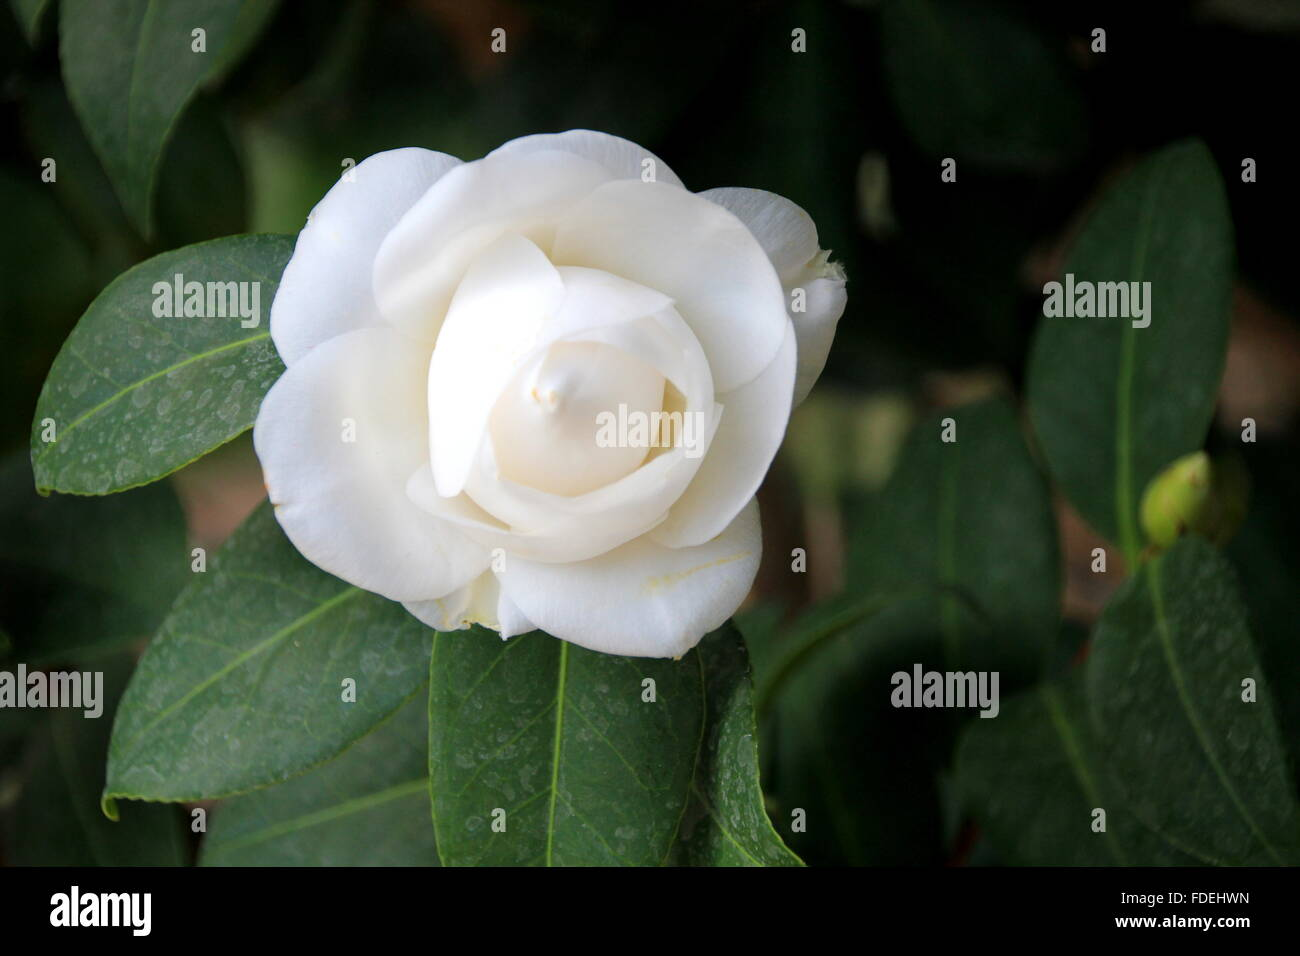 Camelia Flower Stock Photos Camelia Flower Stock Images Alamy